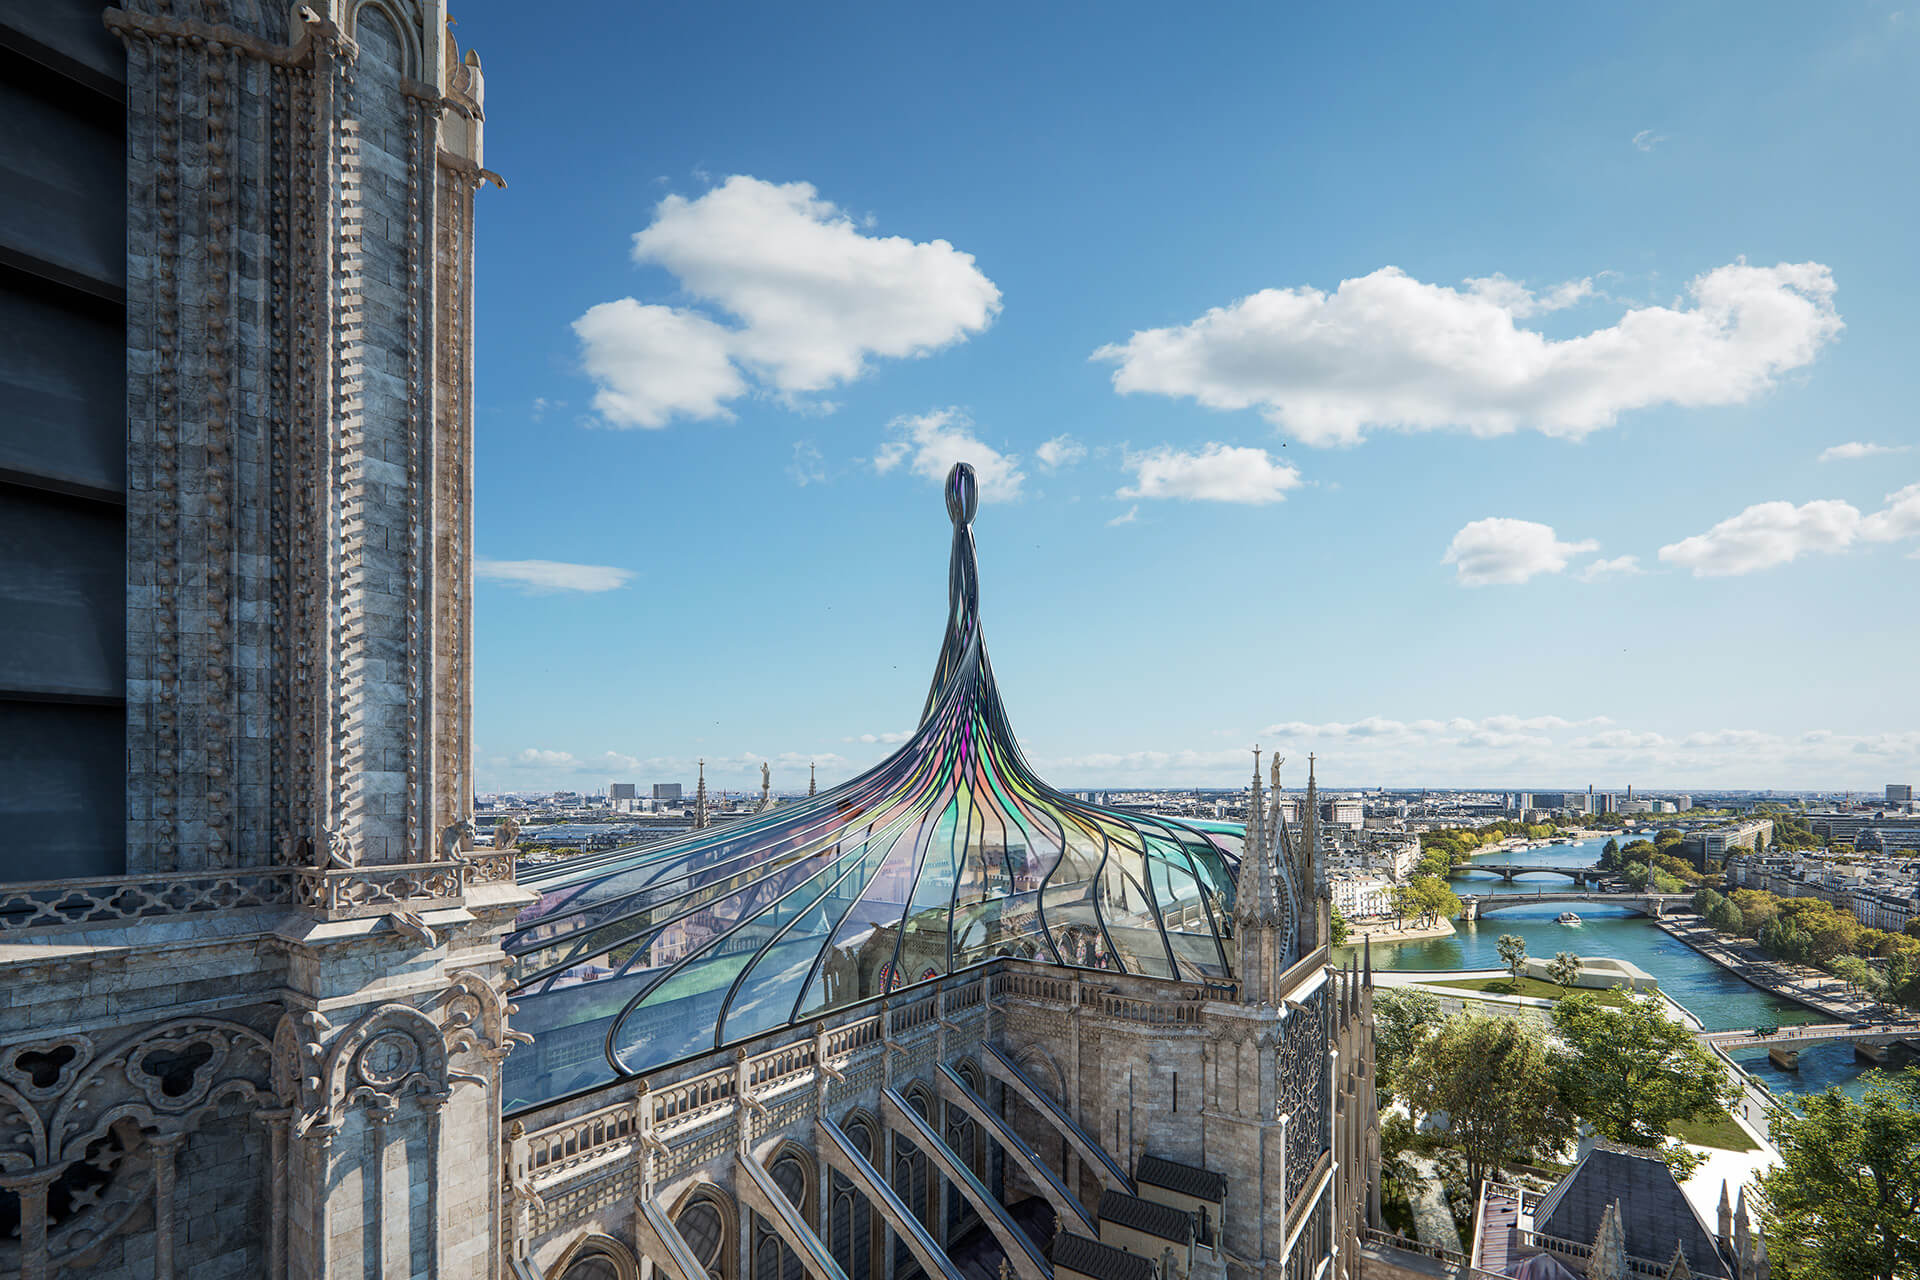 Stained glass roof and spire | Notre Dame cathedral roof restoration proposal by Trnsfrm | STIRworld